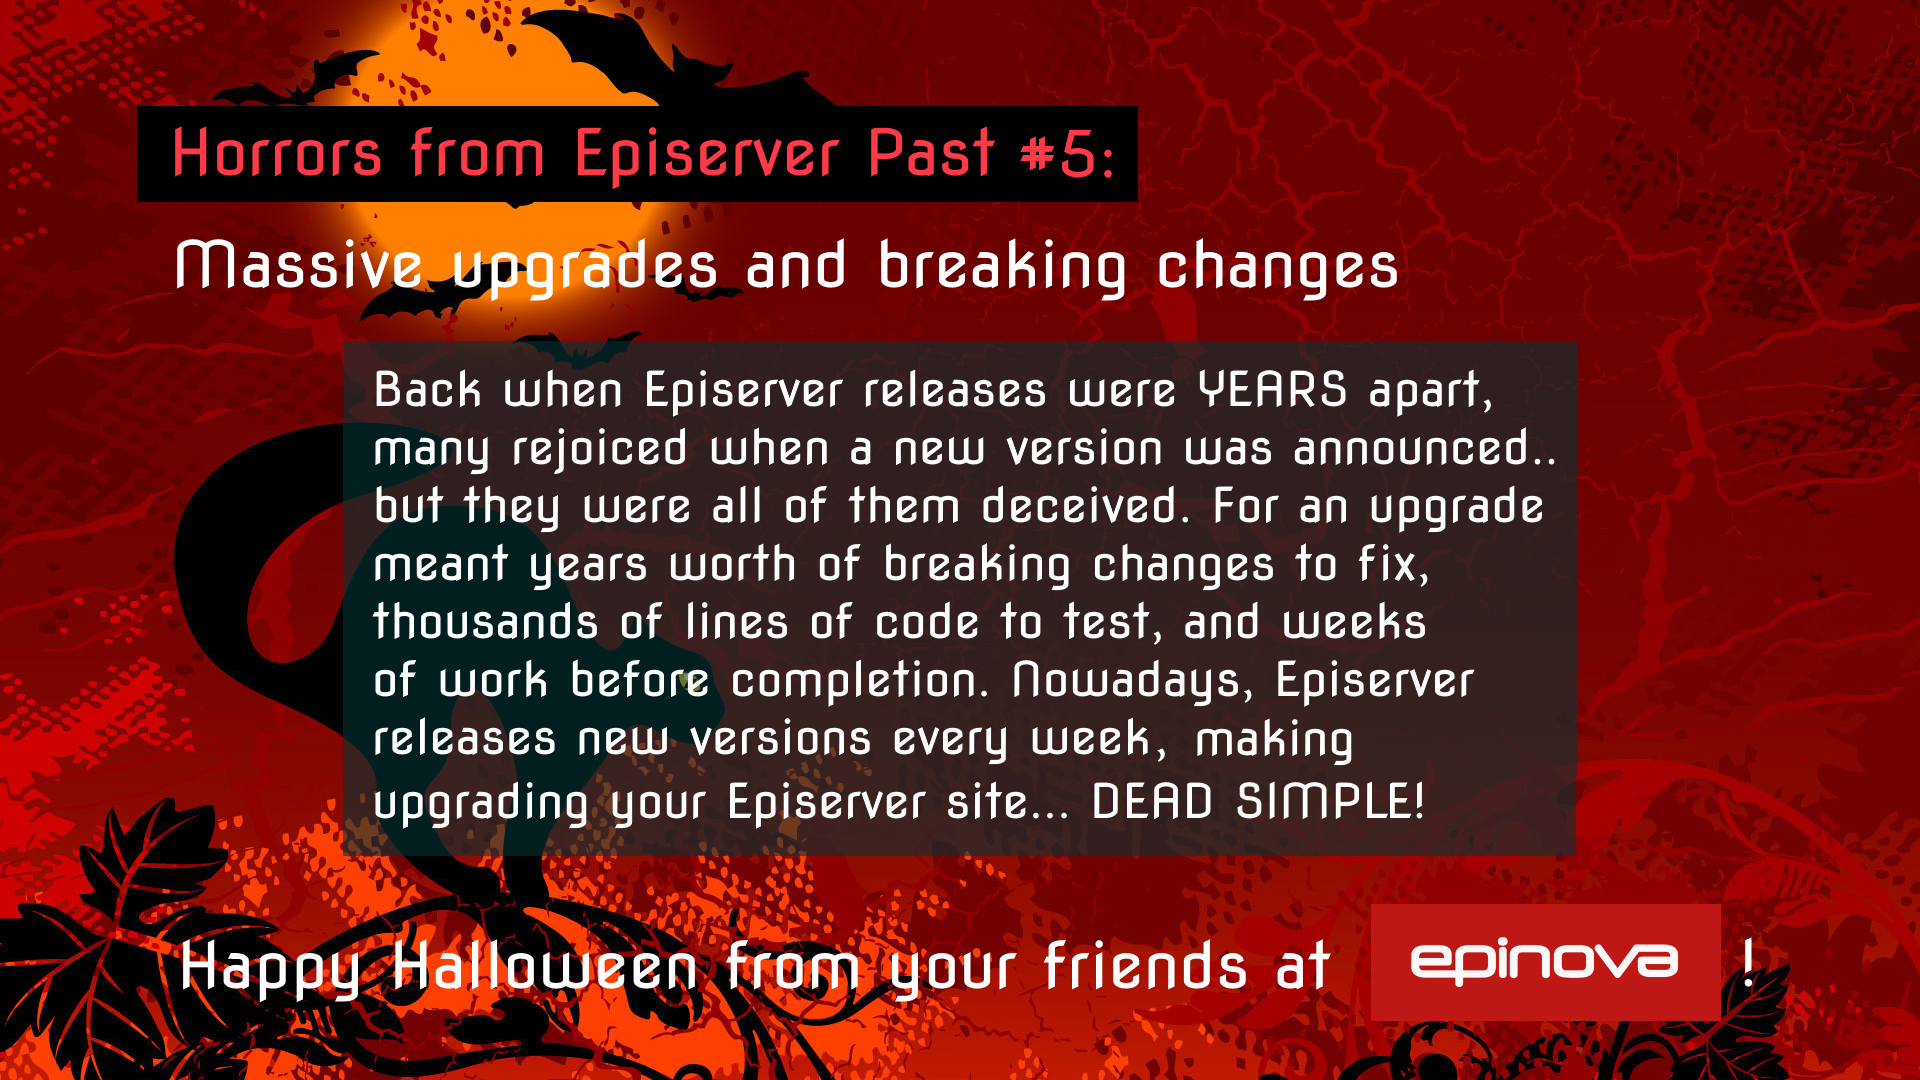 Humorous Halloween throwback to Episerver's old upgrade cycle